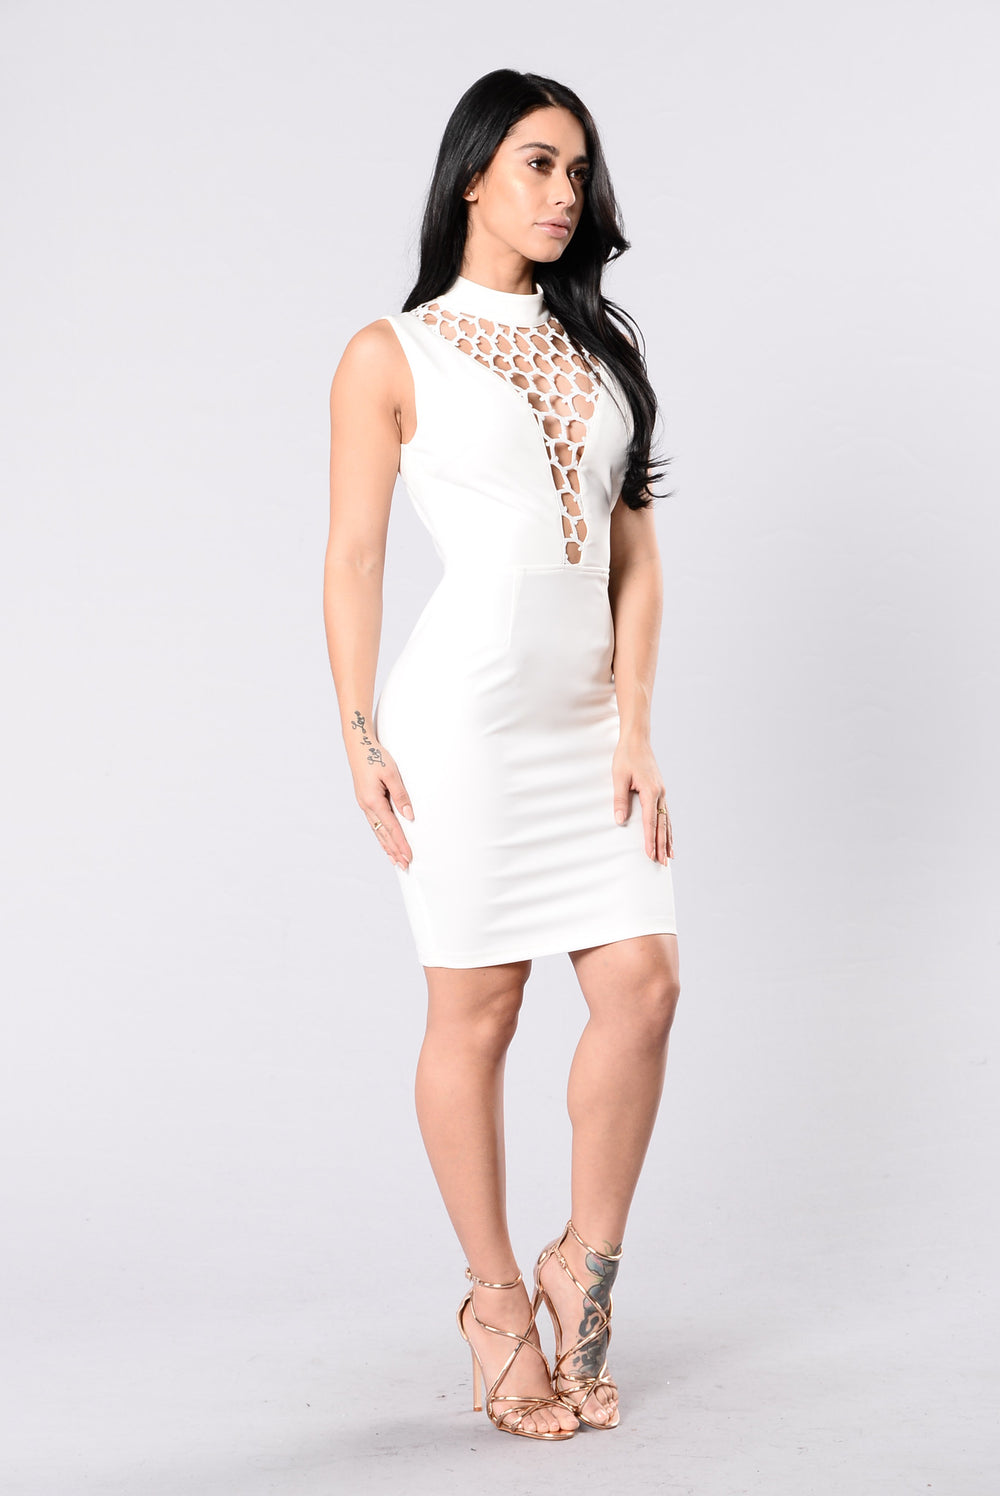 Thrilling View Dress - White